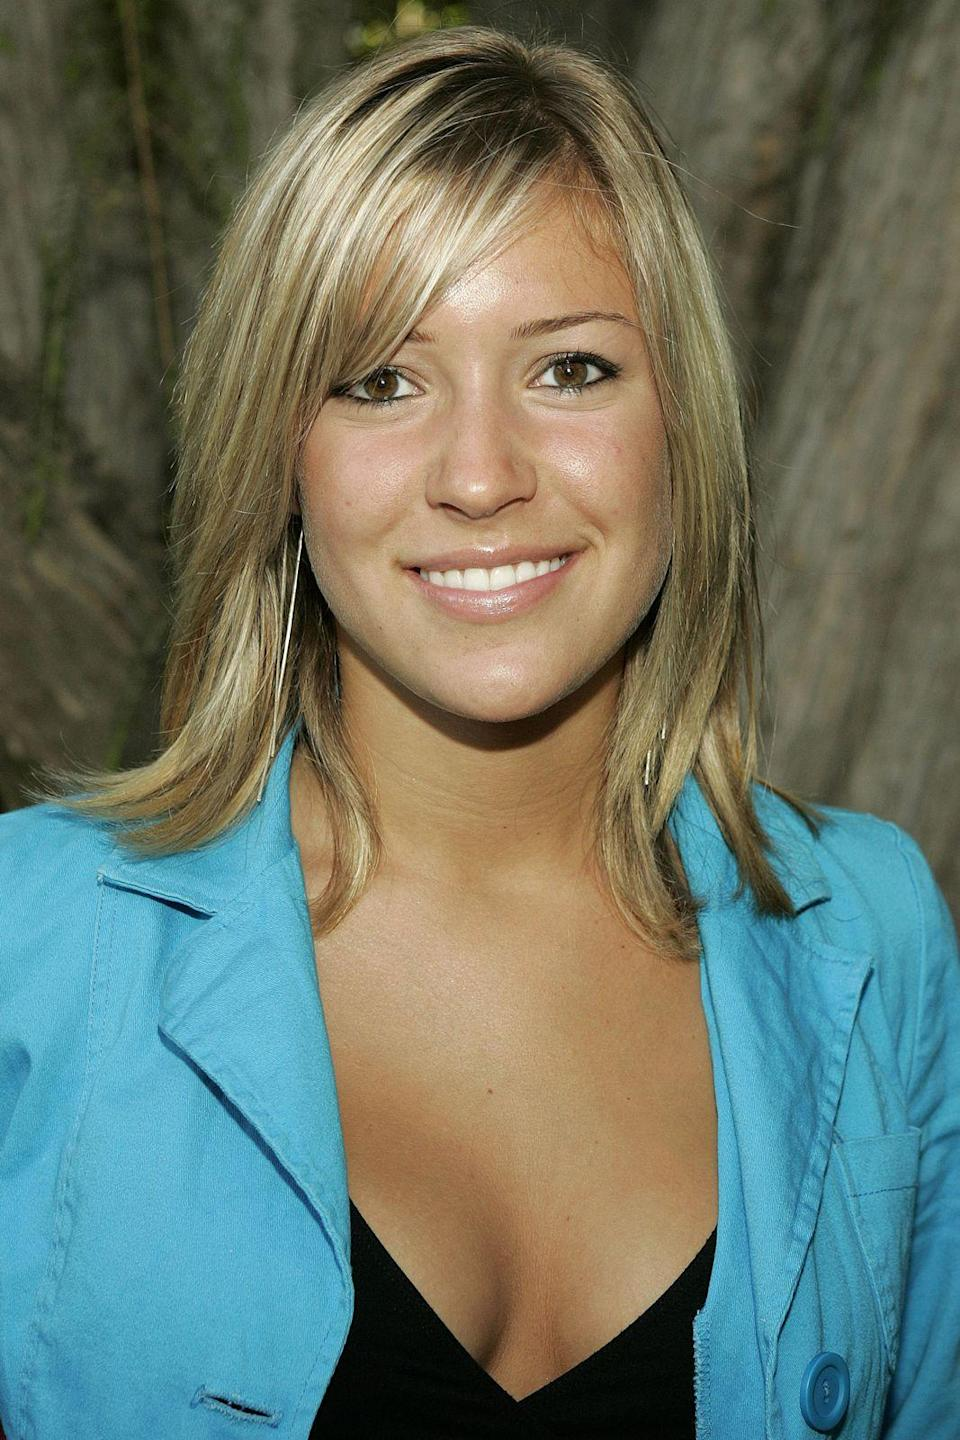 """<p><strong>MTV Laguna Beach Cast Portraits, 2002</strong></p><p>""""Oh God, what was I thinking here? I didn't know any better. This is one of the first photos I ever took before we started filming for <em>Laguna Beach</em>. I was 17, and I thought I looked really good. My eyebrows are so thin. I look very puffy and bloated. And I thought my blue blazer was <em>everything</em>.""""</p><span class=""""copyright"""">Photo: Jason Merritt/FilmMagic.</span>"""